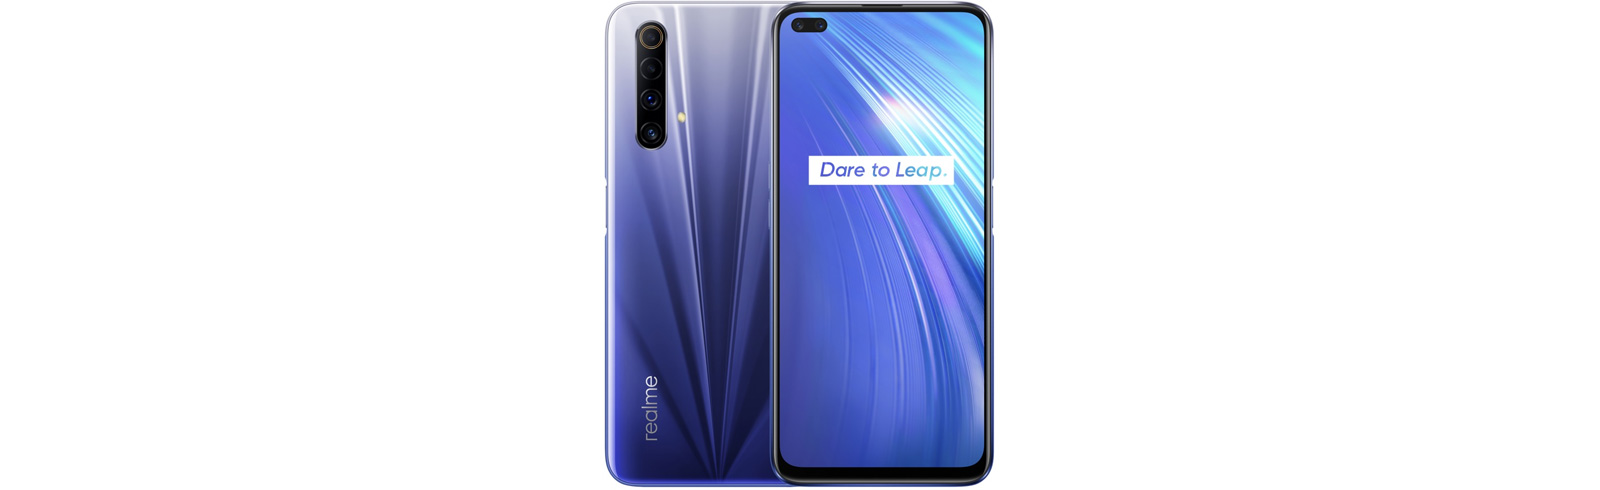 Realme X50t 5G Telecom Cooperation Edition is released in China - specifications and prices